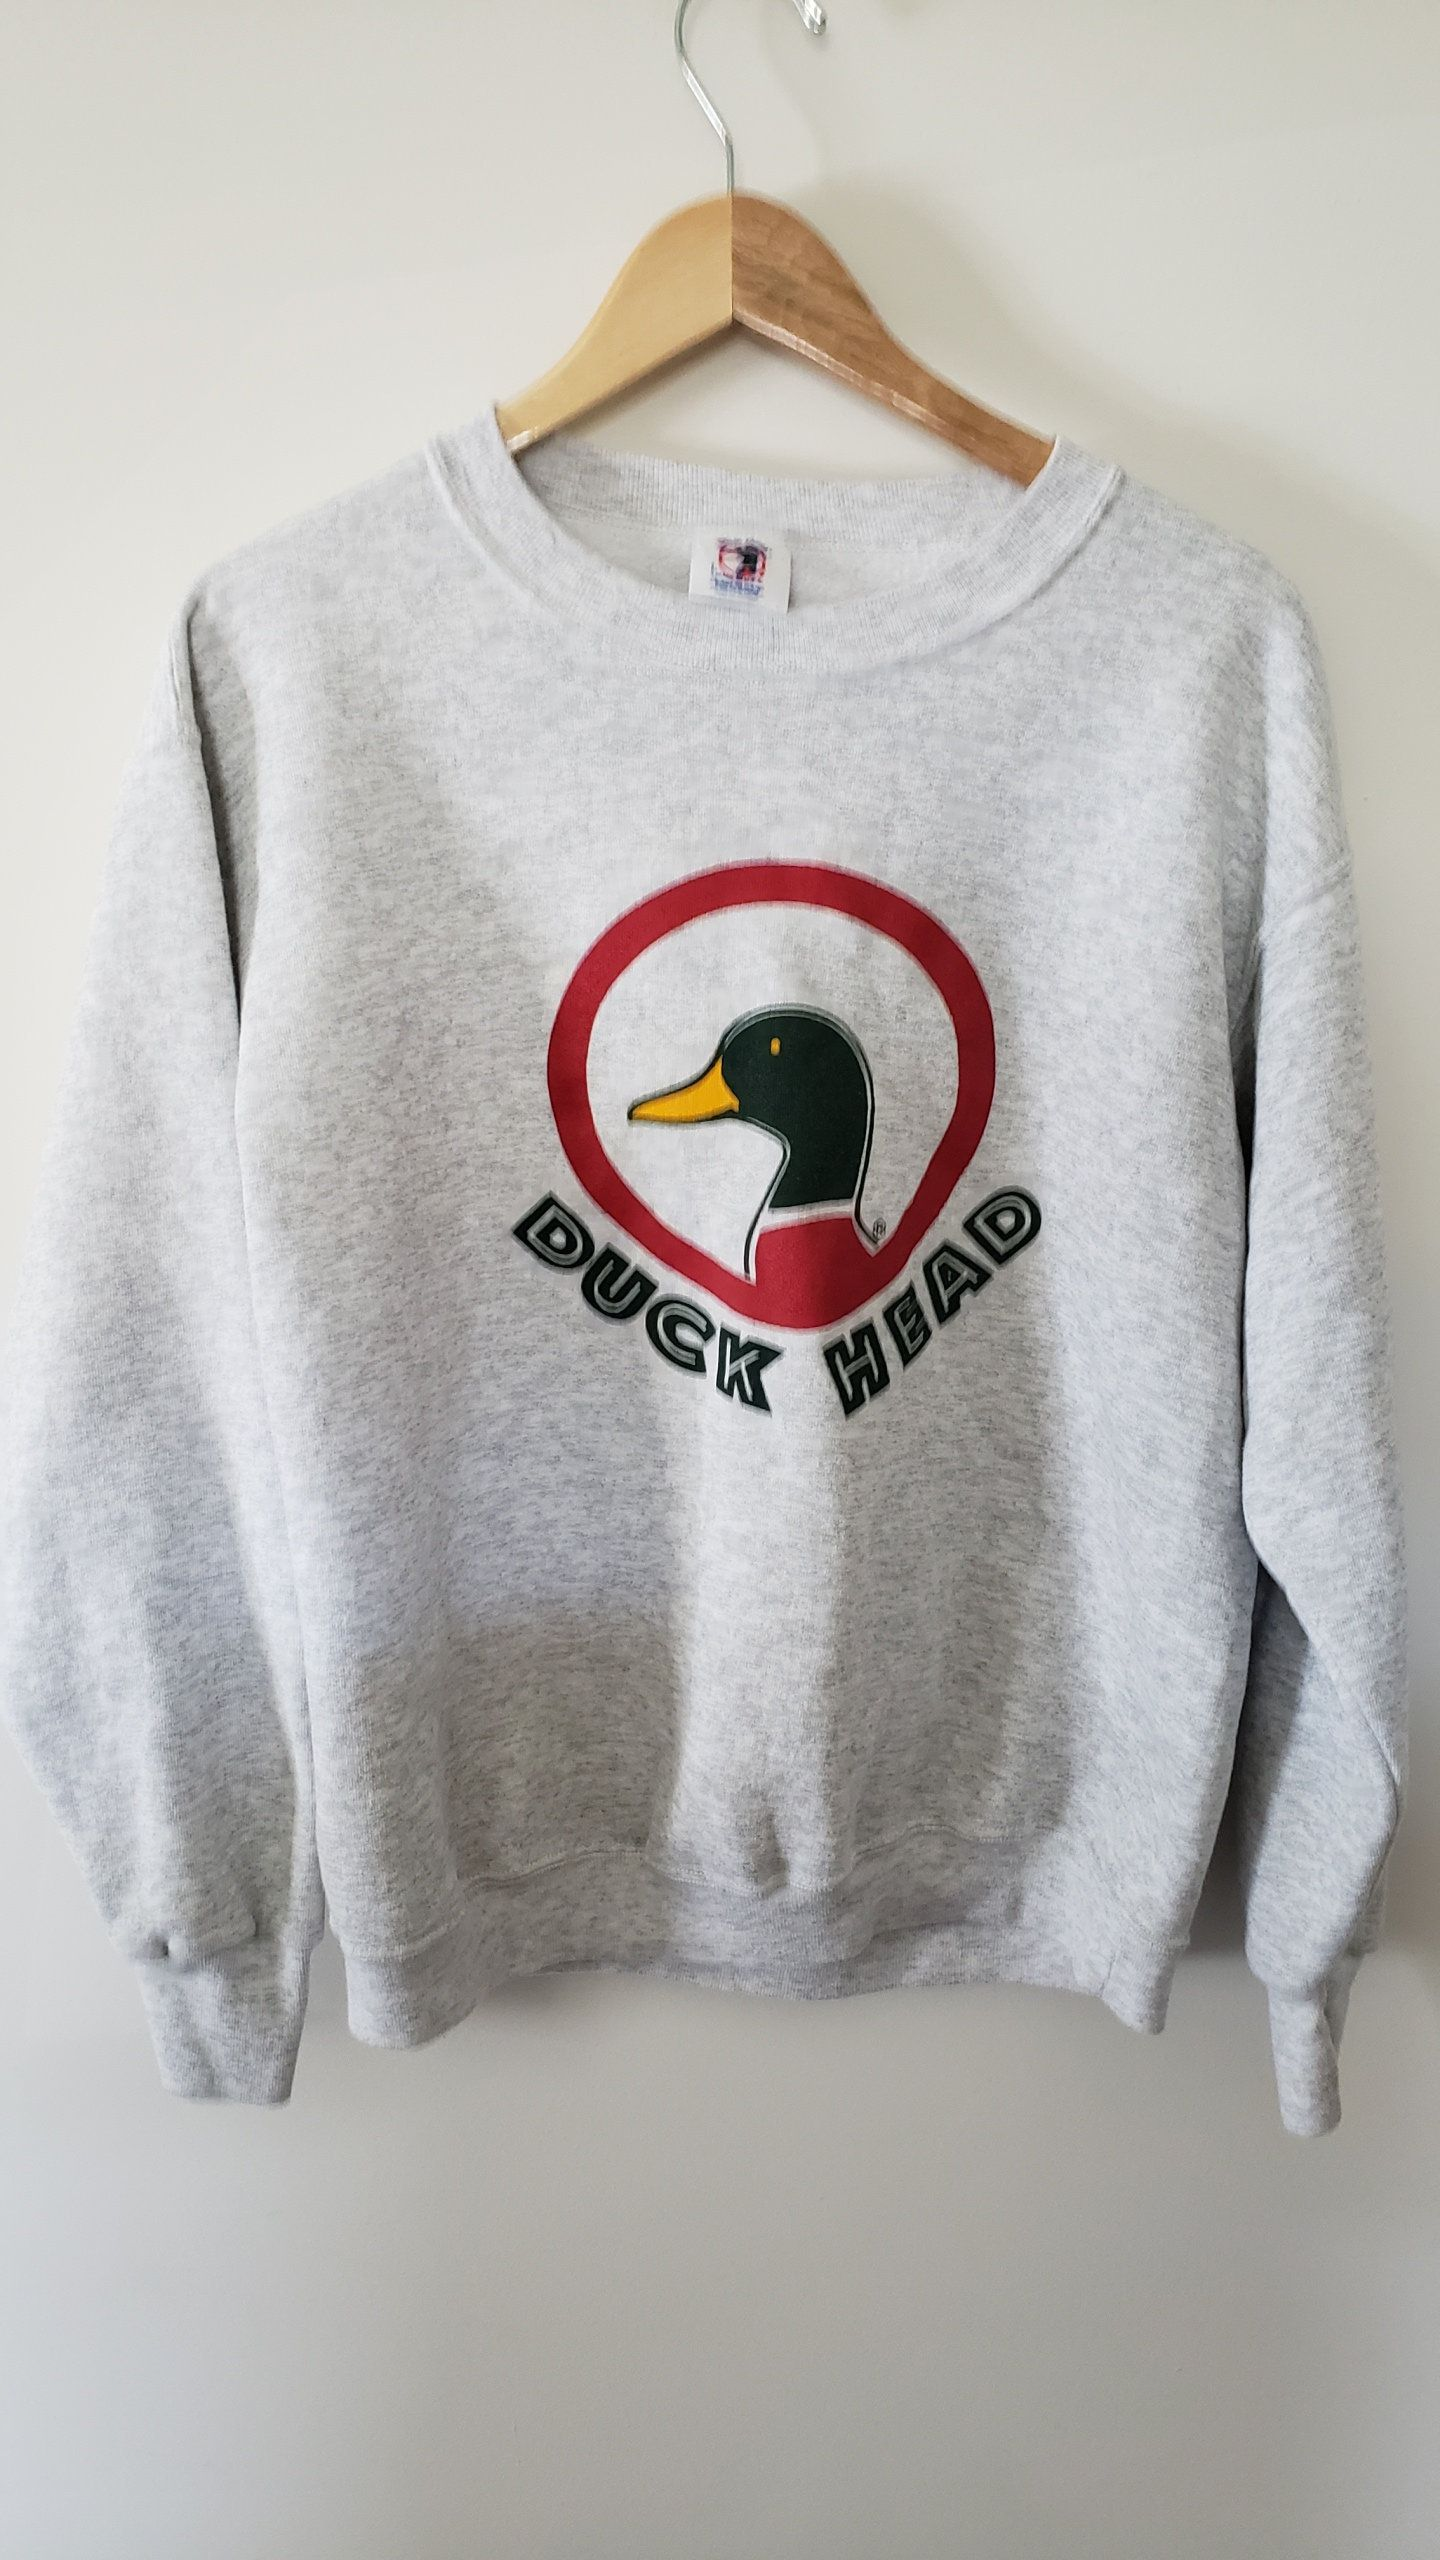 edb770c15 Vintage 90's Duck Head Tail Two Sided Crewneck Sweatshirt - Size Large Prep  Trendy Old School Classic Throwback Retro by RackRaidersVtg on Etsy